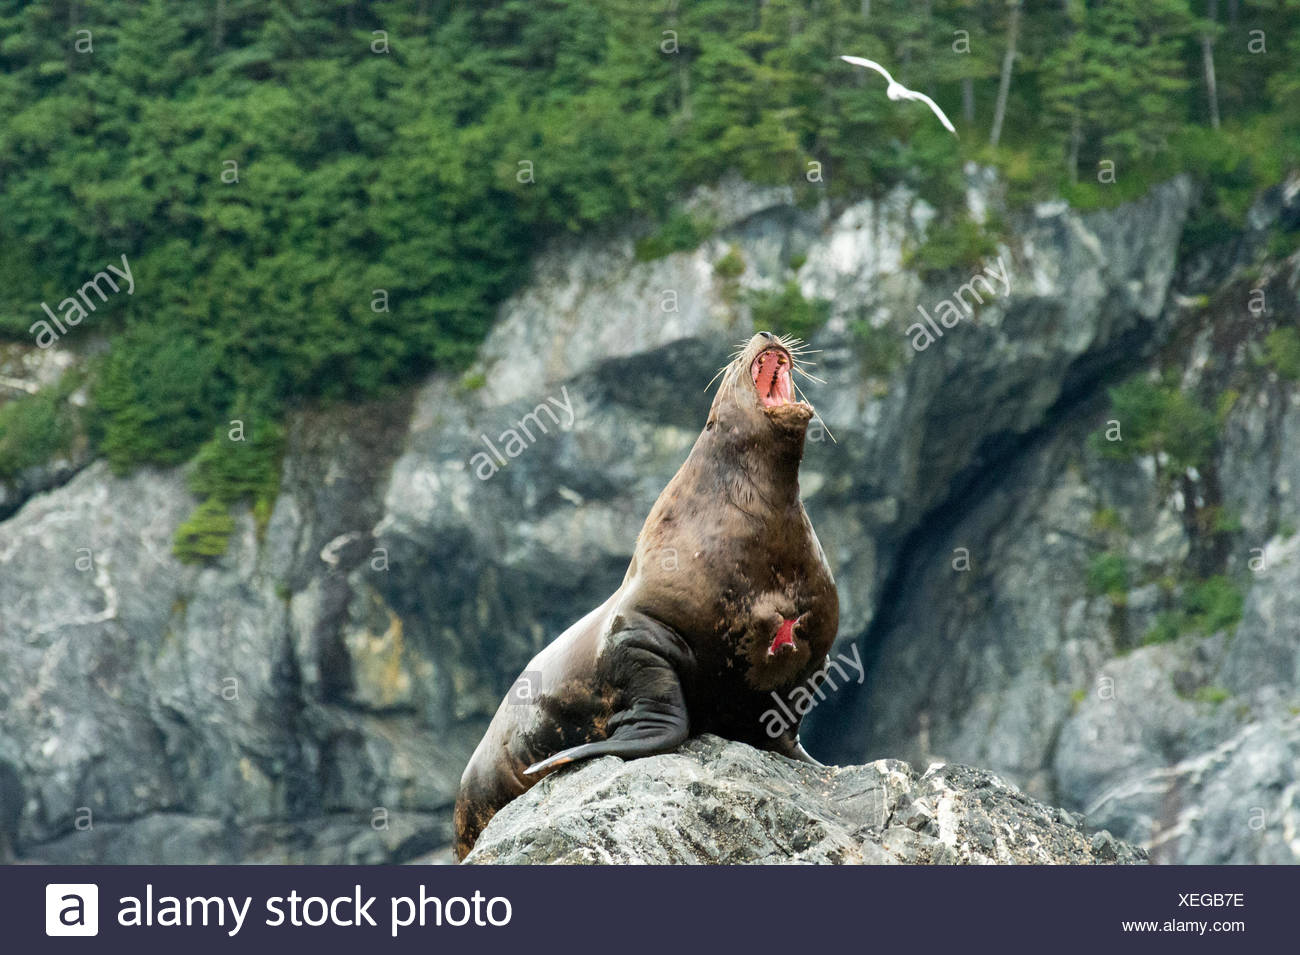 A wounded stellar sea lion (Eumetopias jubatus) barks from his perch on a rocky island. Stock Photo